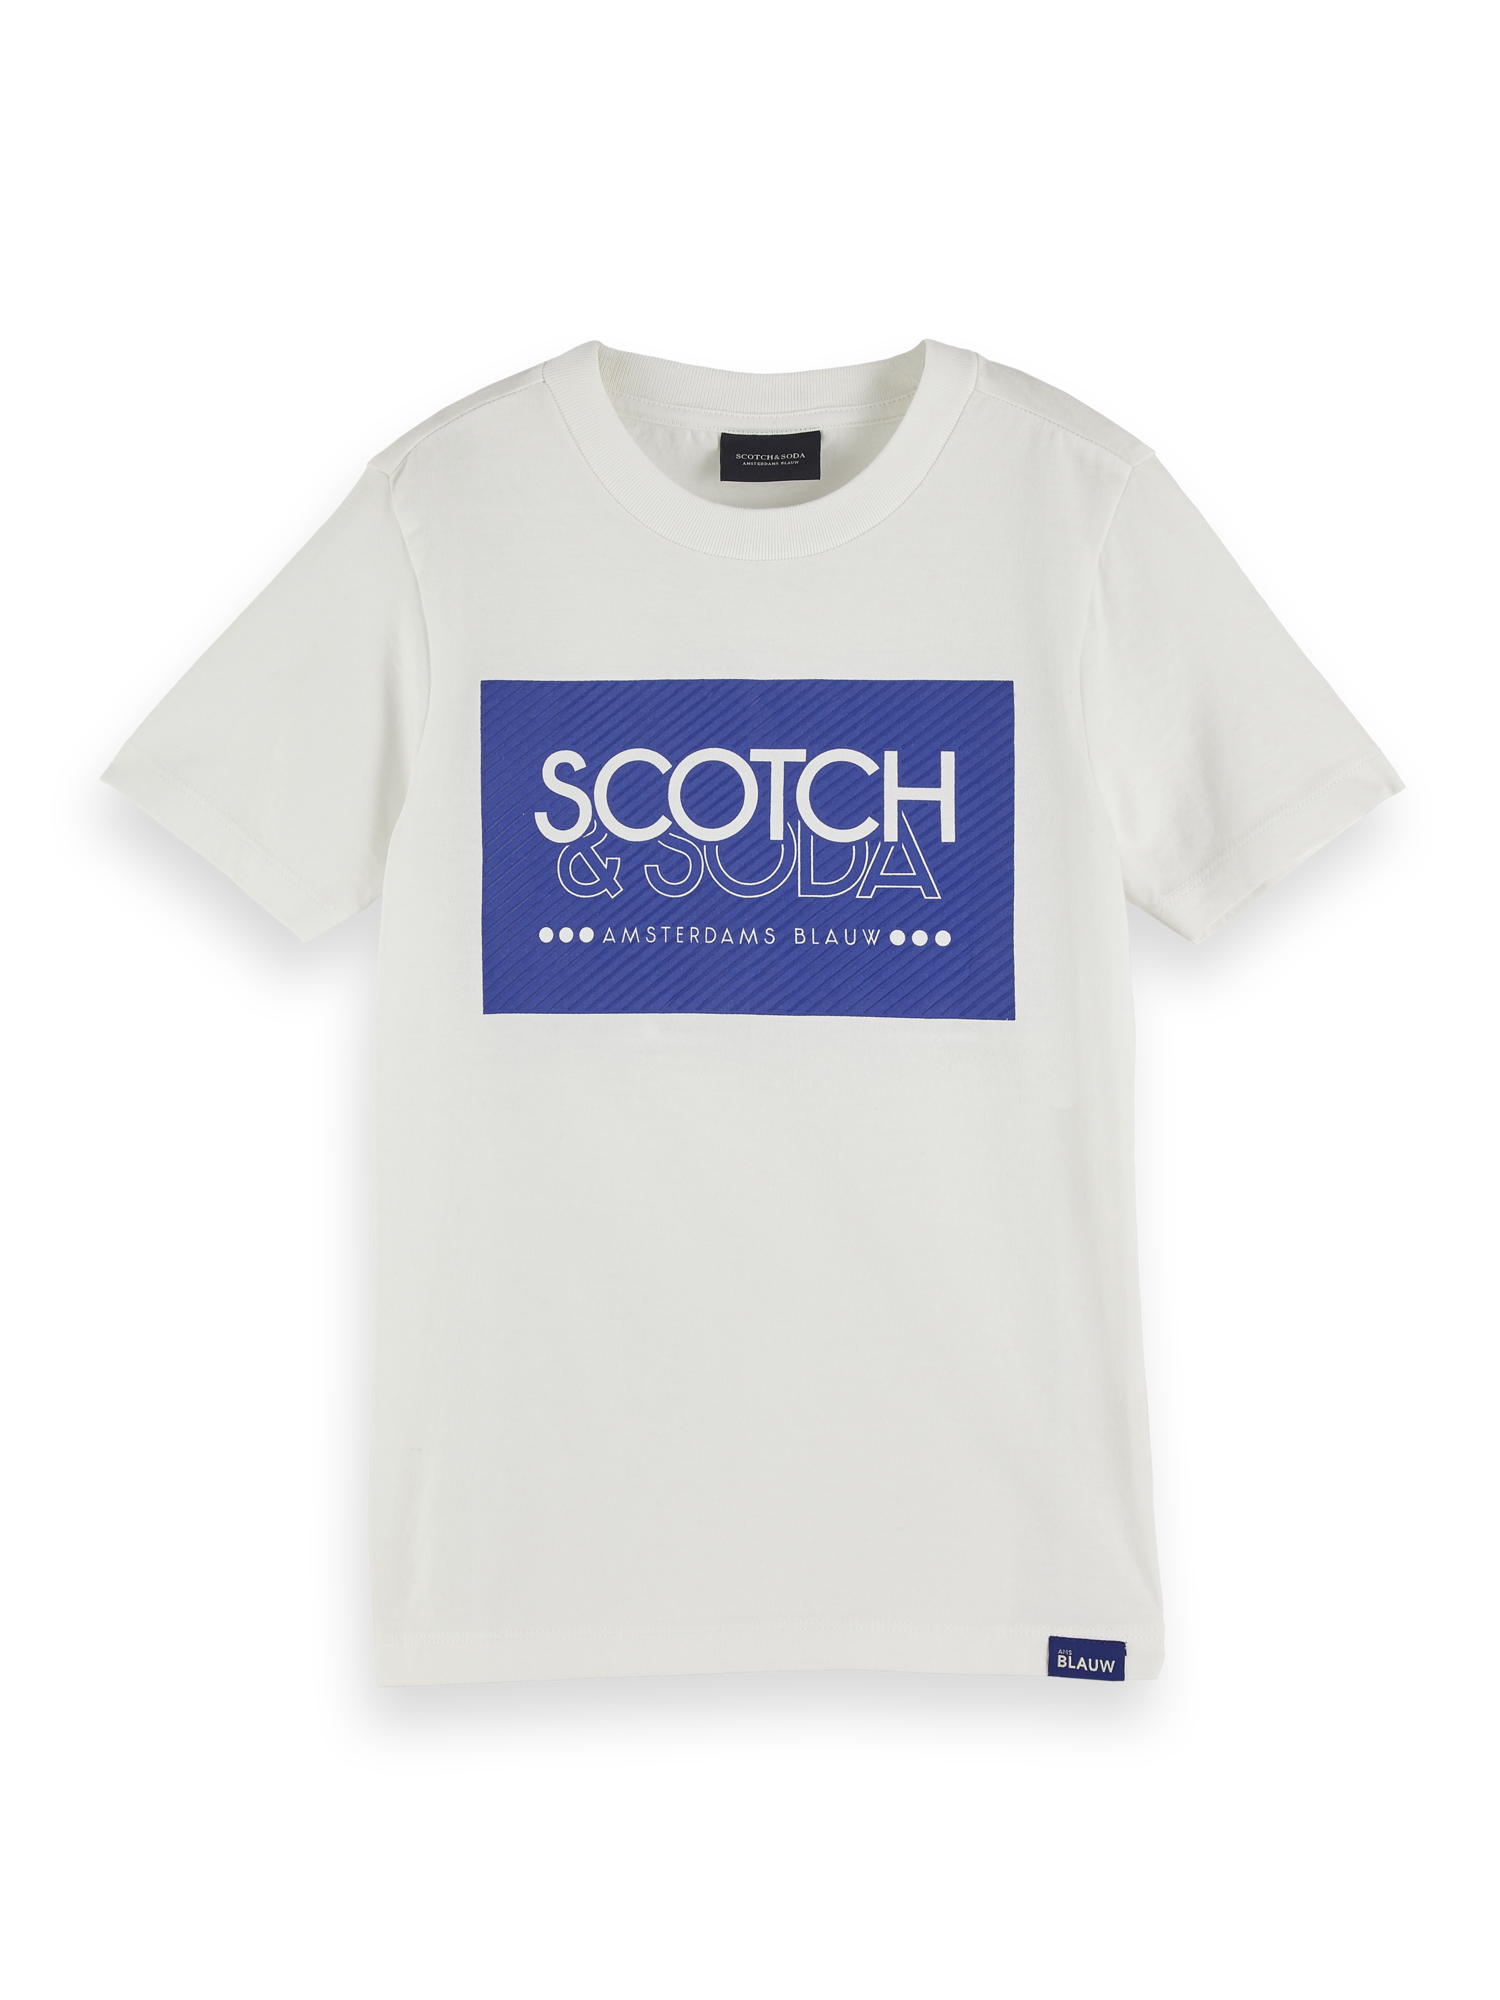 SCOTCH & SODA T-Shirts | Scotch & Soda T-Shirt mit Artwork-Logo